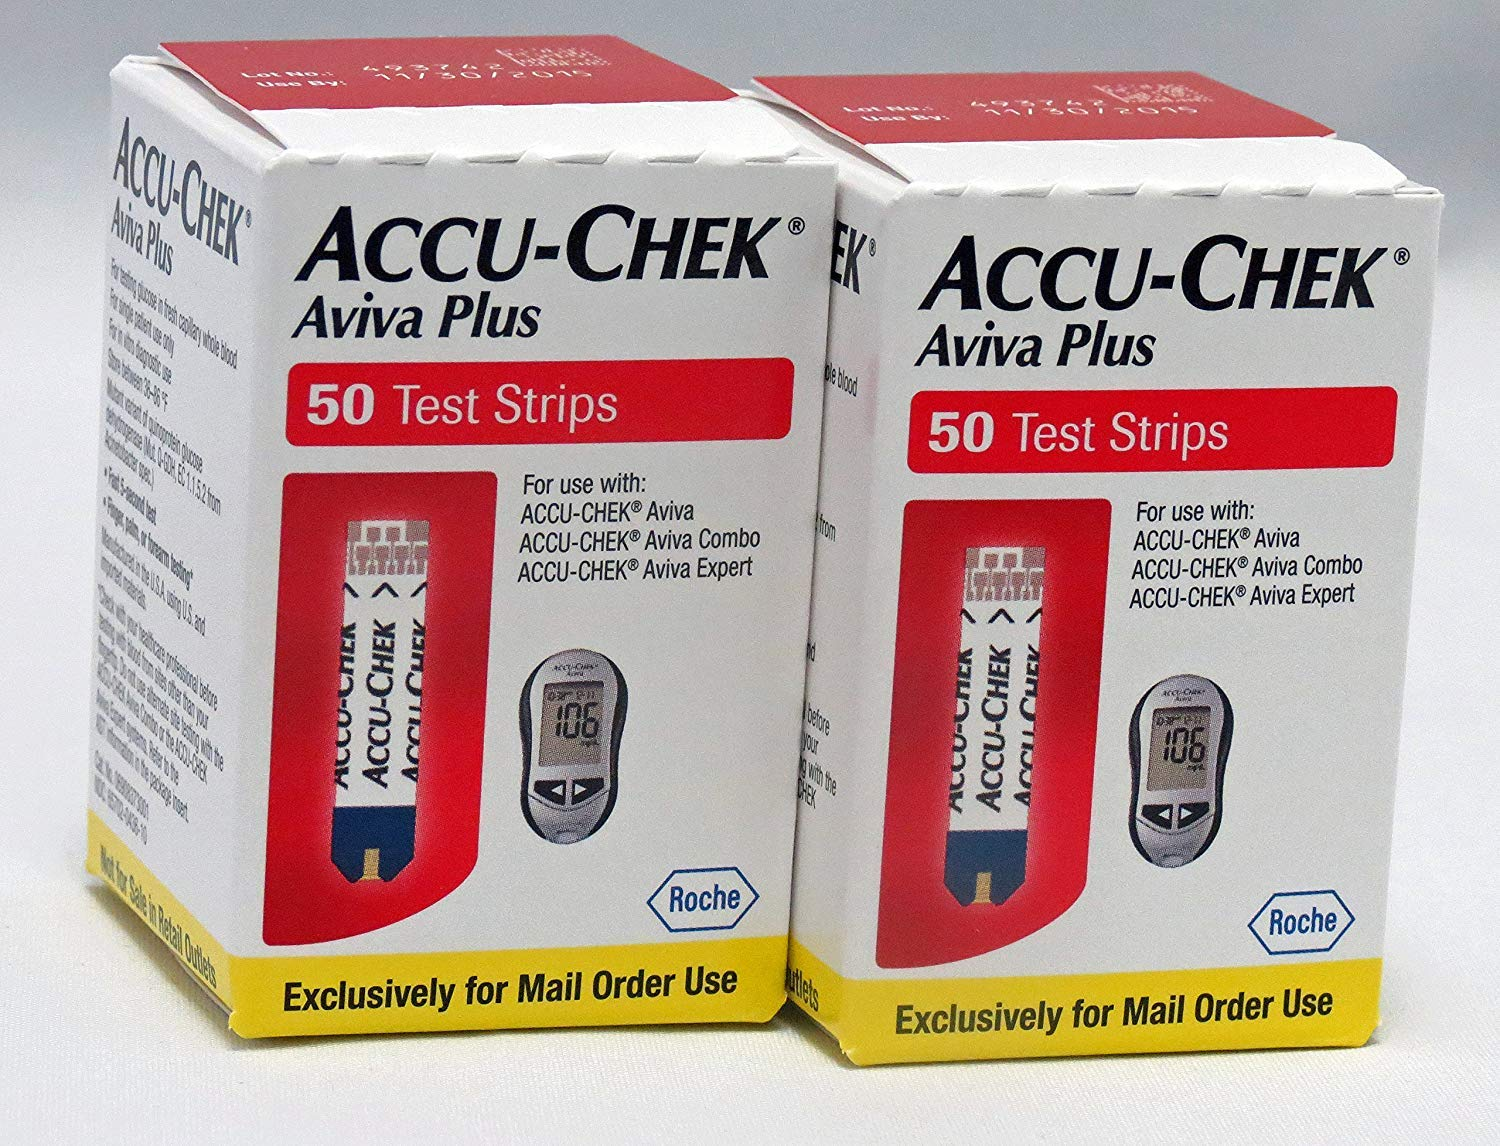 ACCU-CHEK Aviva Plus Mail Order Test Strips (100 Count) 2 Packs of 50 by Accu-Chek